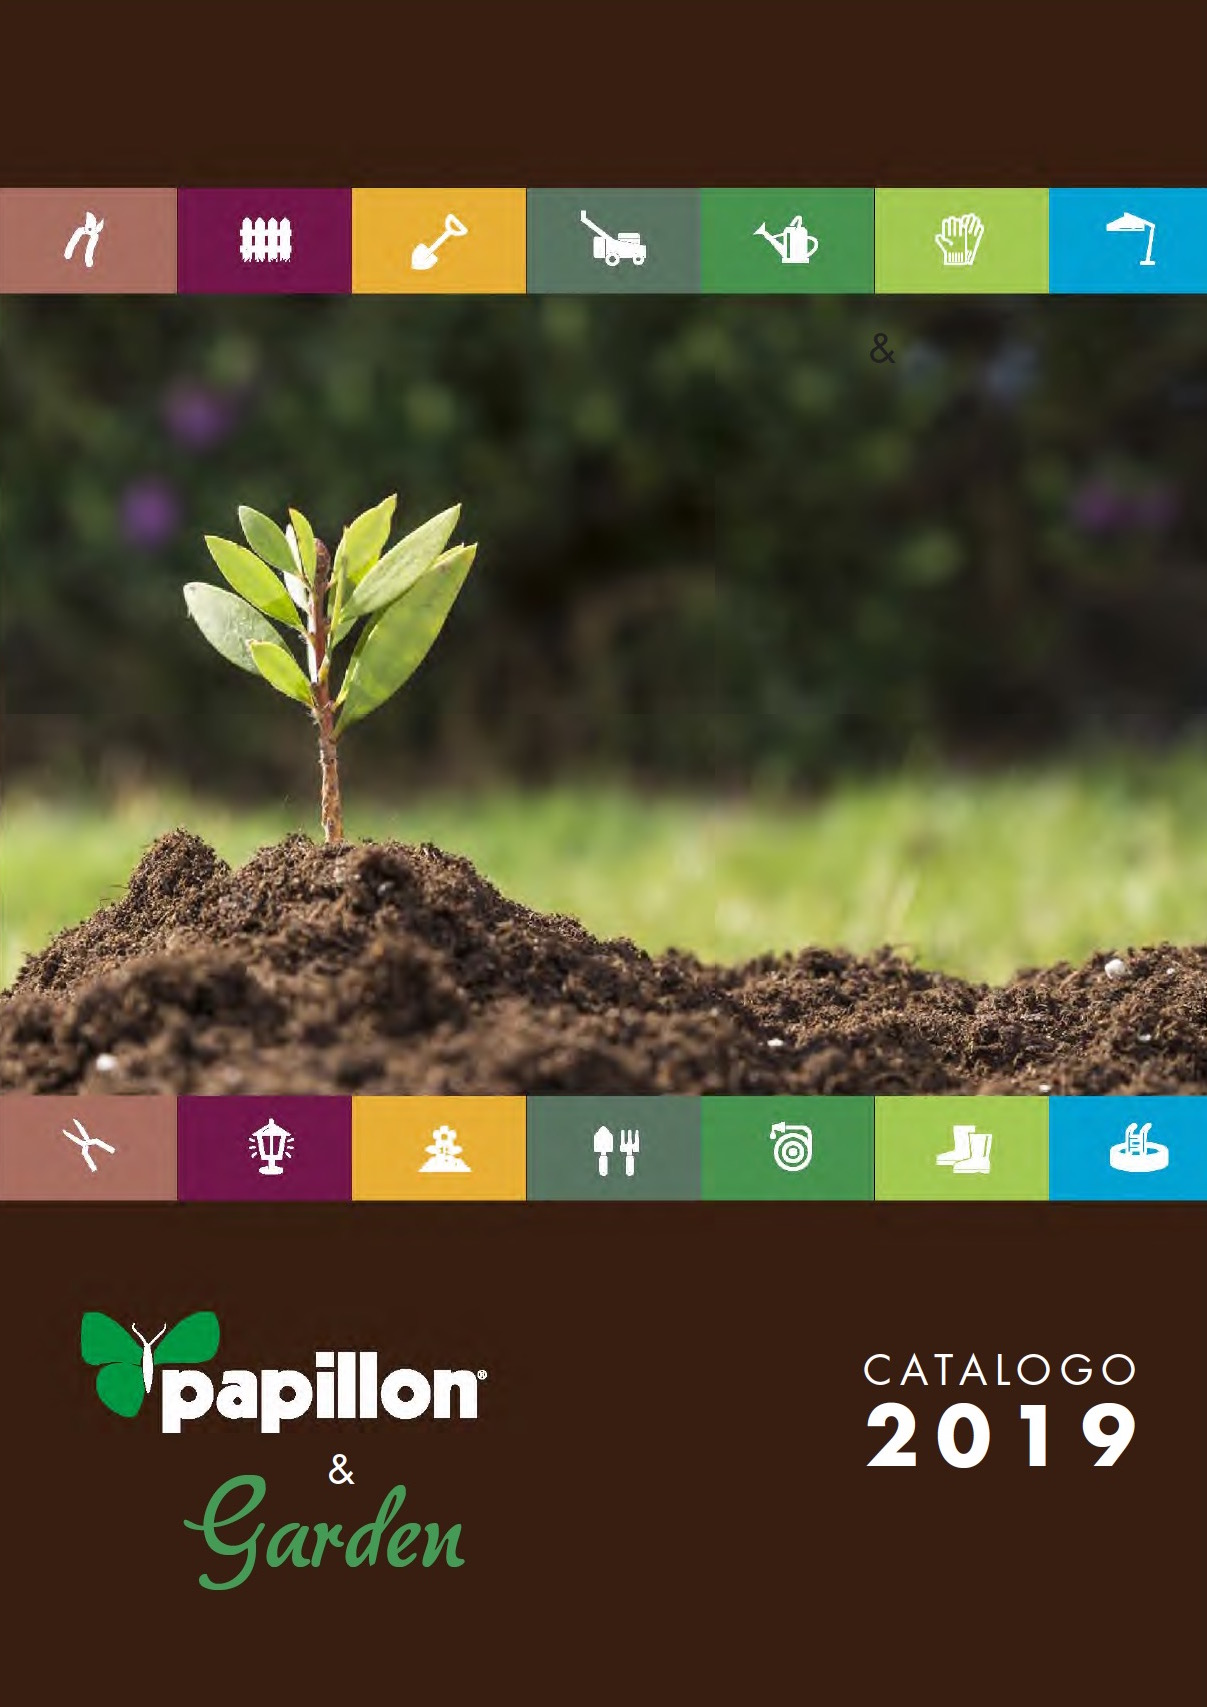 CATALOGO PAPILLON 2019